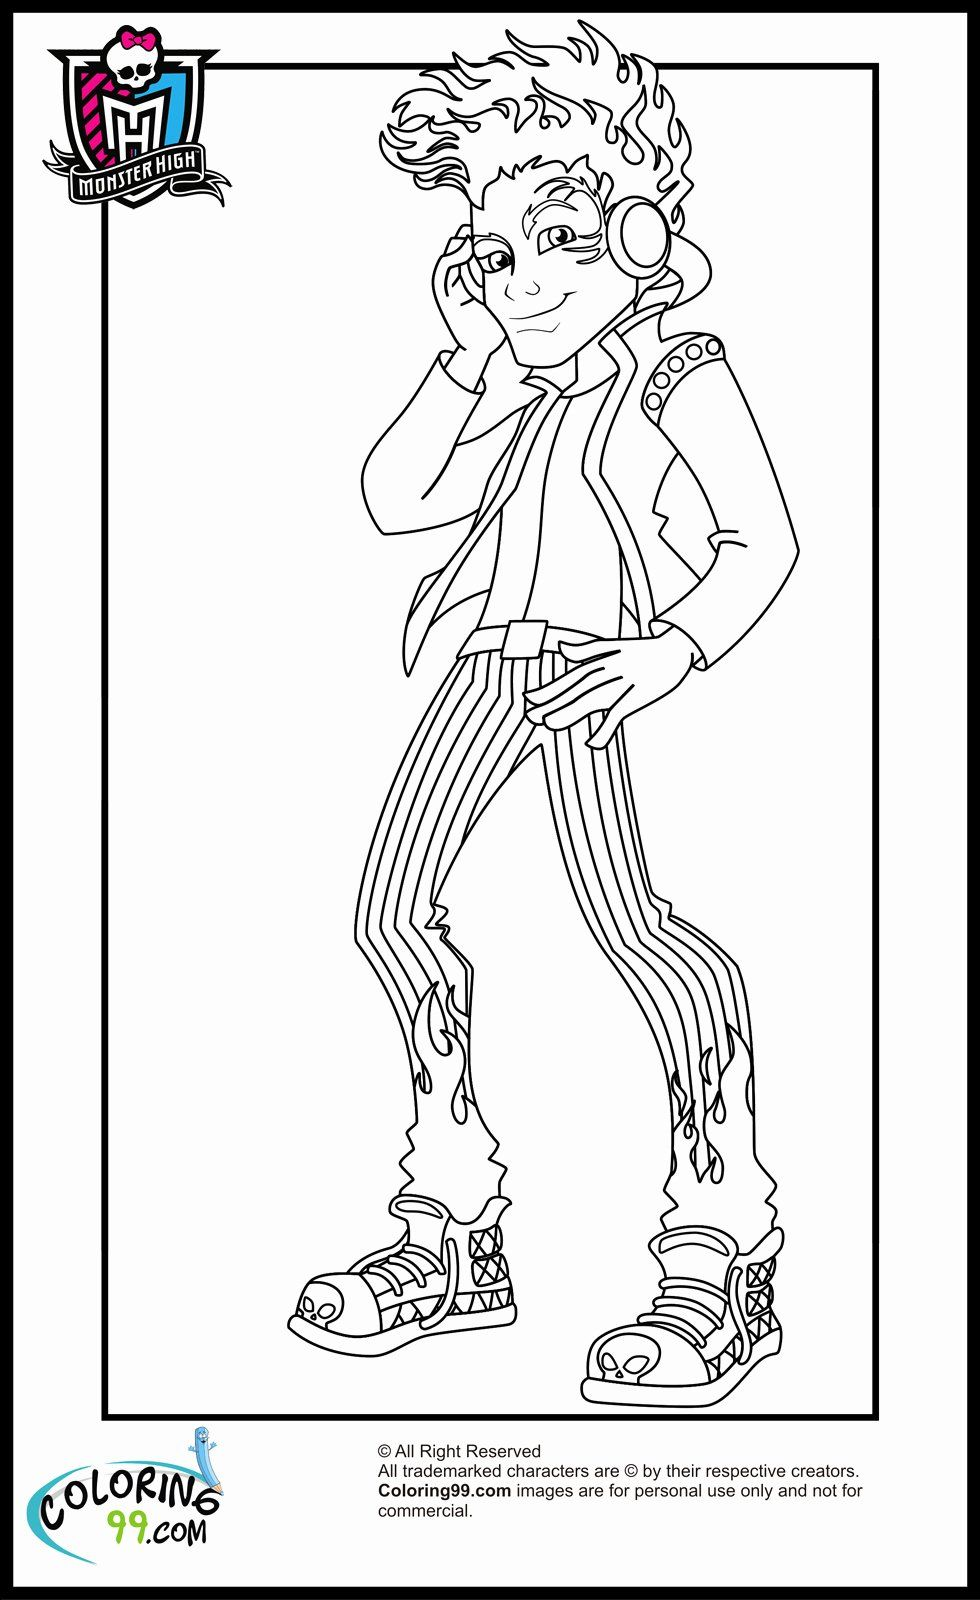 Monster High Coloring Book Best Of Monster High Boys Coloring Pages In 2020 Monster High Boys Coloring Pages For Boys Coloring Pages